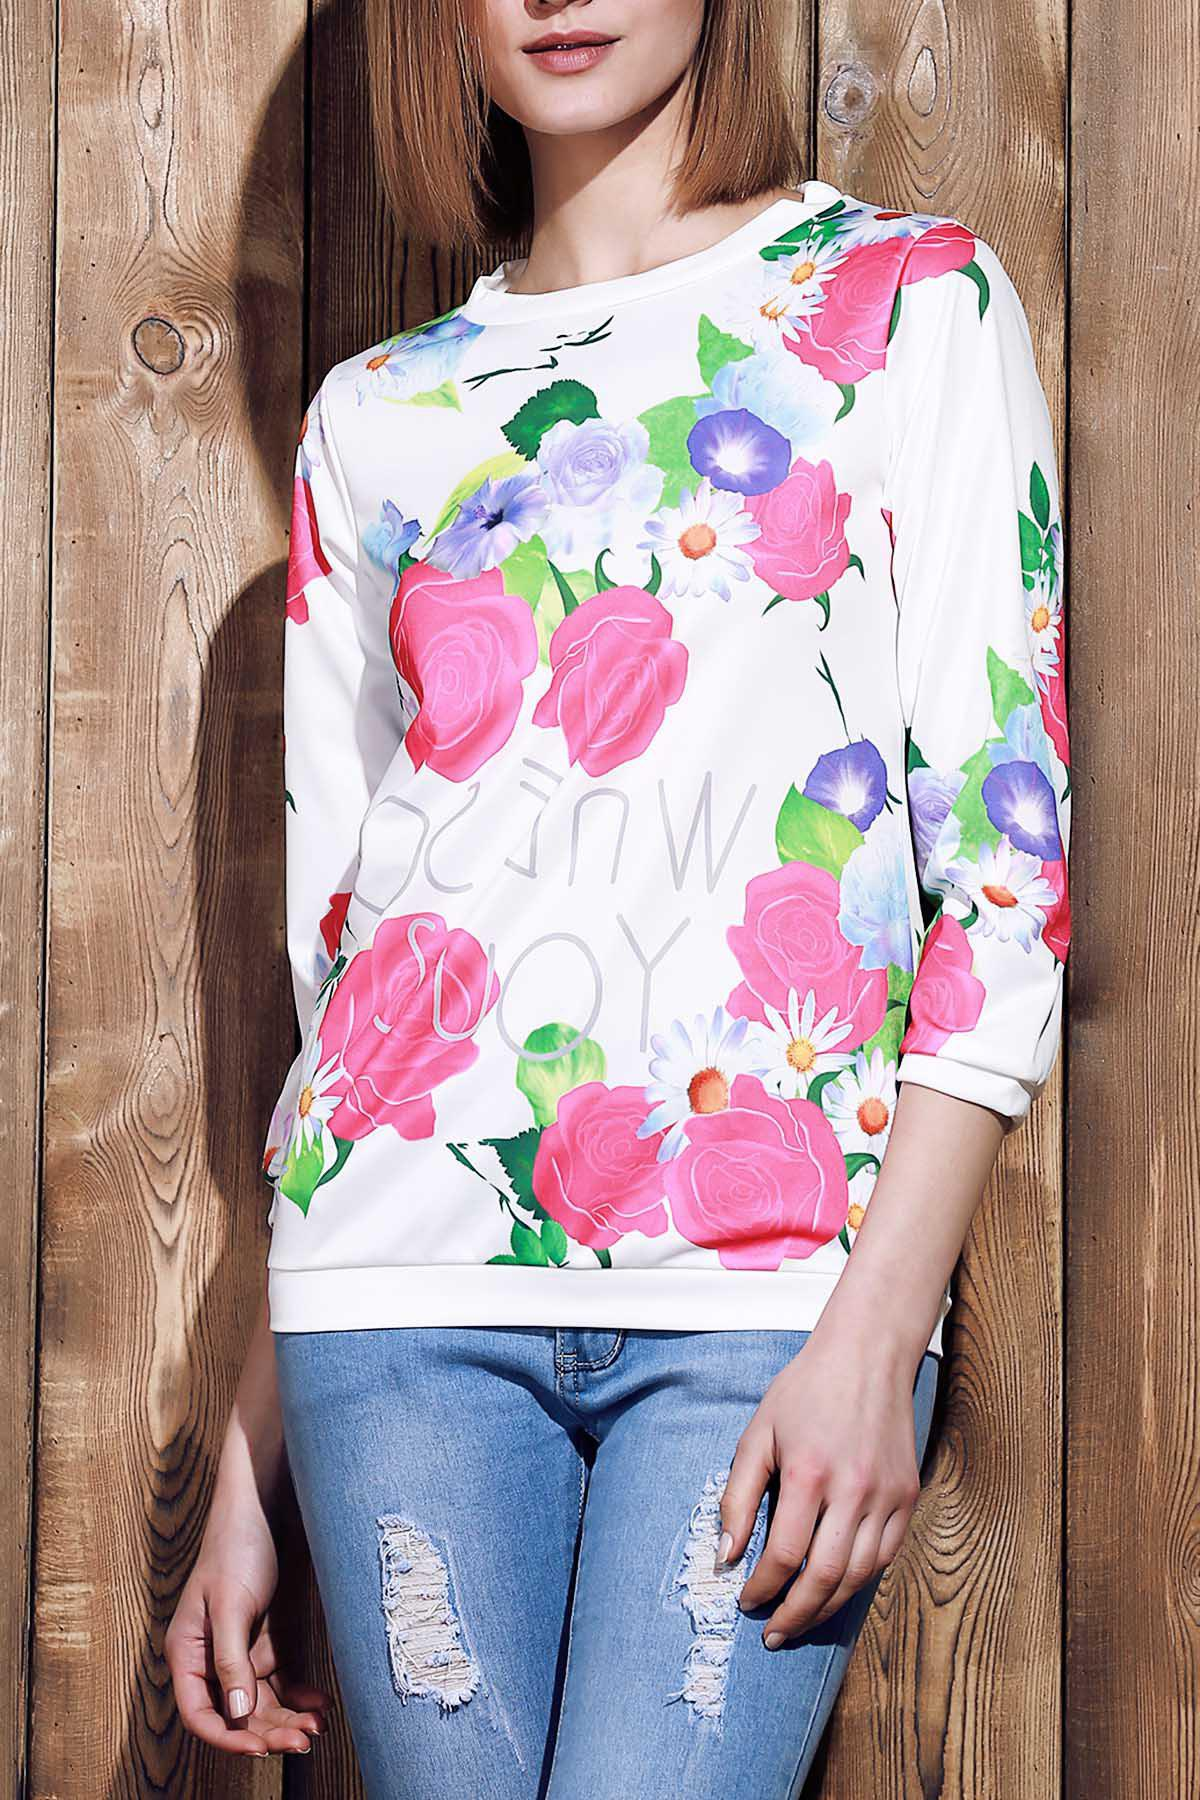 Endearing 3/4 Sleeve Various Colorful Floral Printed Sweatshirt For WomenWomen<br><br><br>Size: XL<br>Color: ROSE